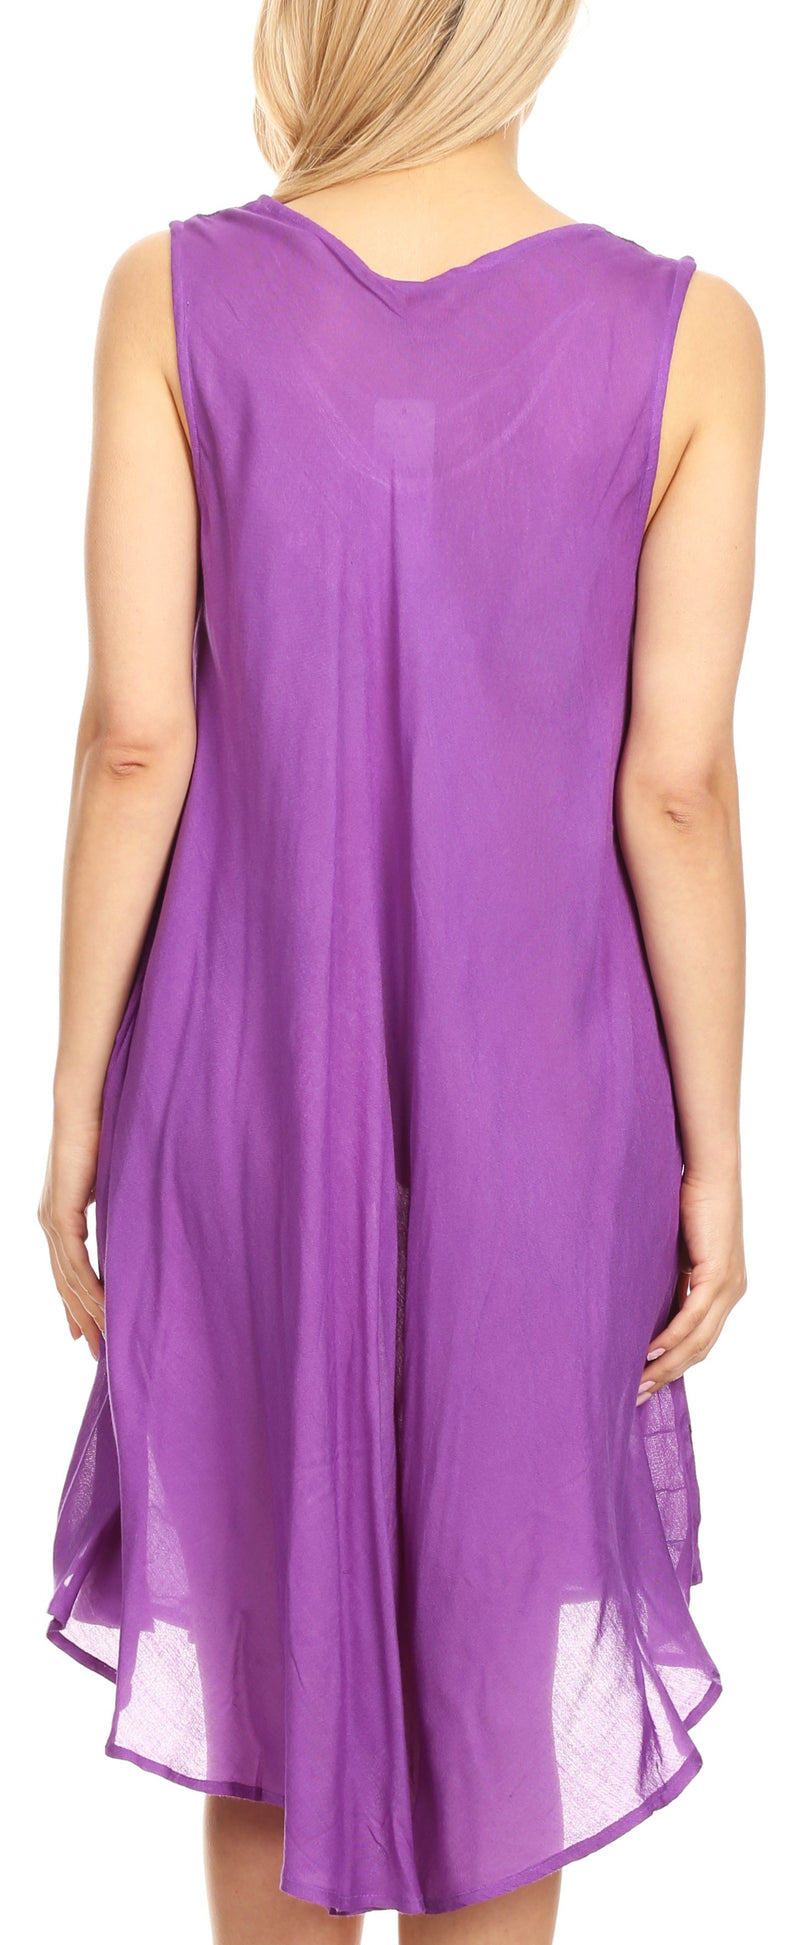 Sakkas Tina Women's Casual Summer Loose Sleeveless Tank Midi Dress Cover-up